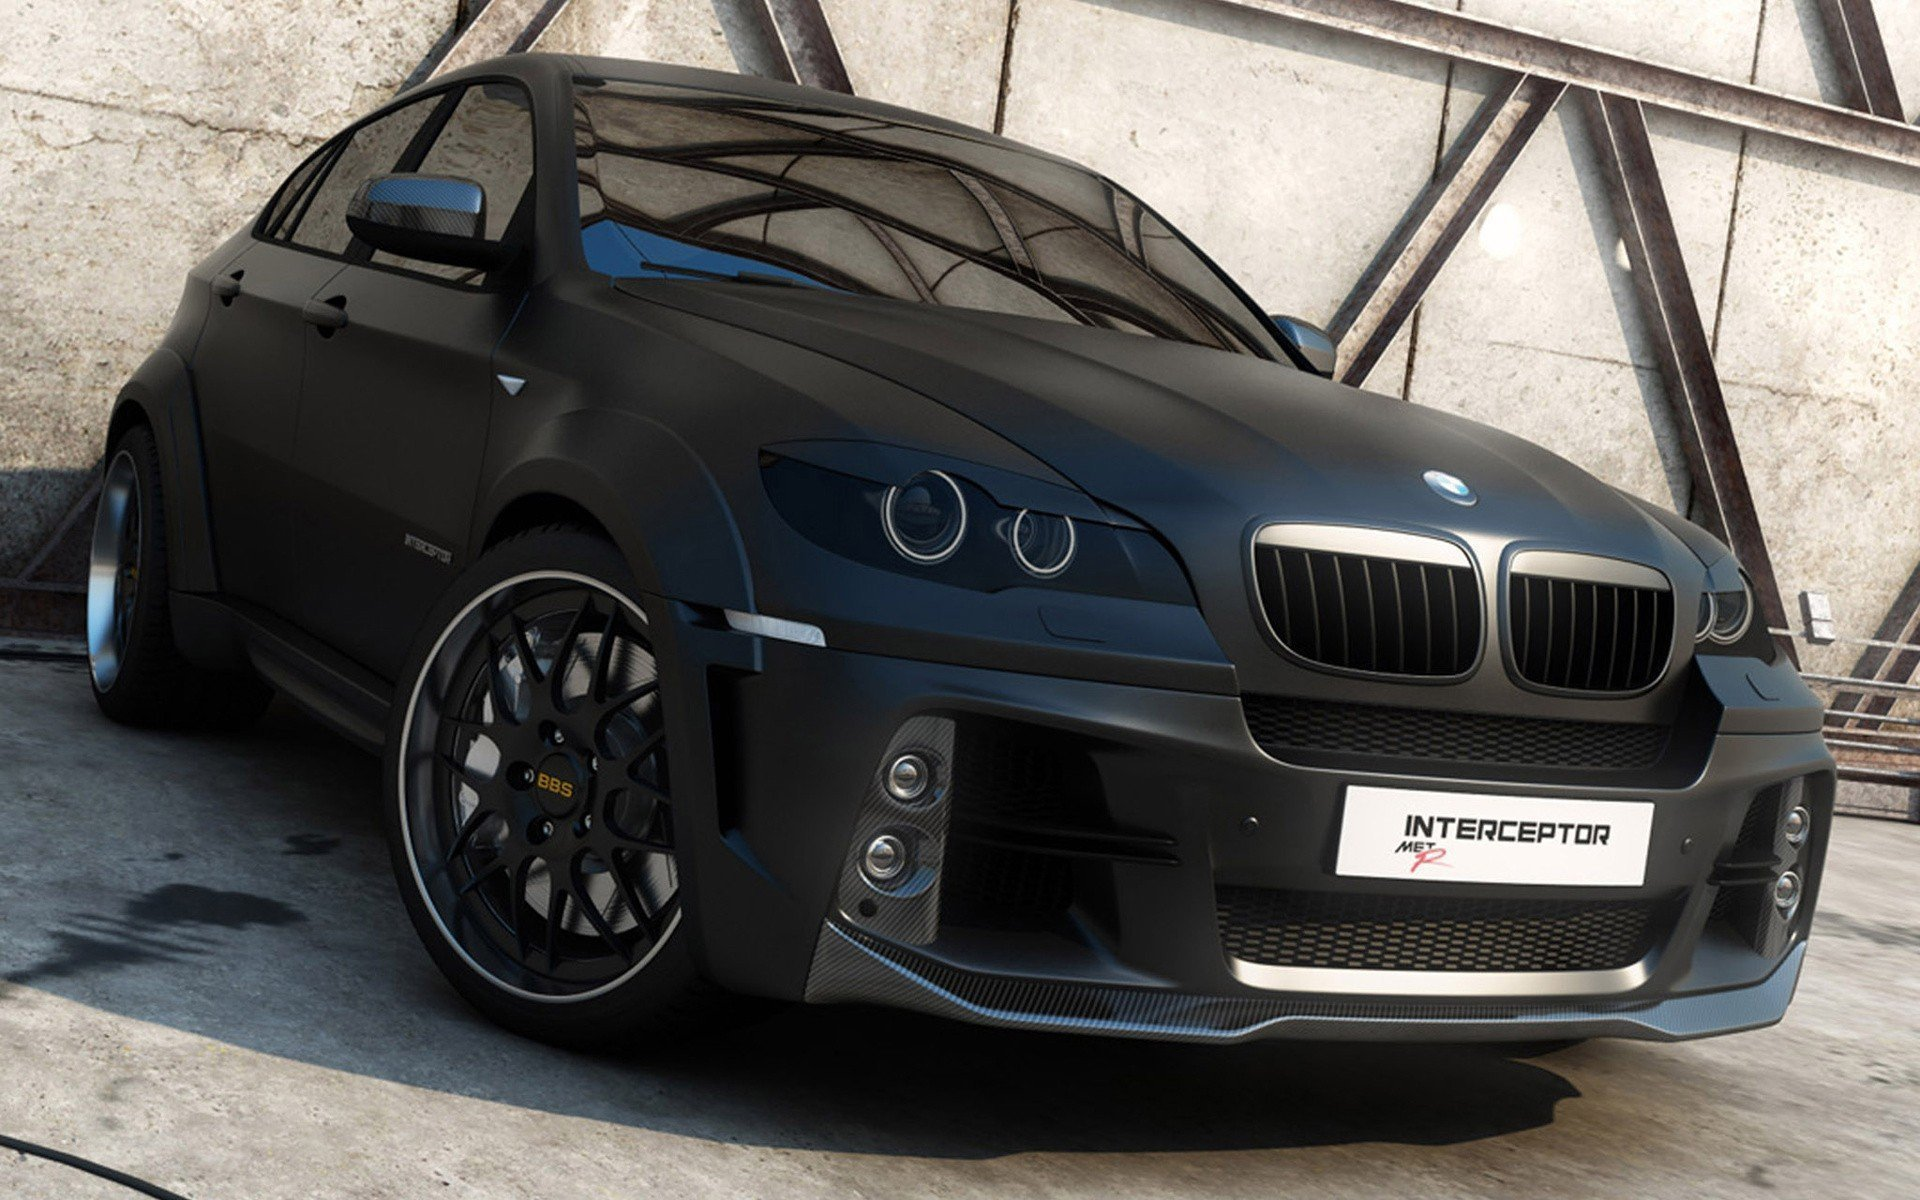 Latest Bmw Hdfree Download Matte Black M Hd Wallpapers Full Size Free Download